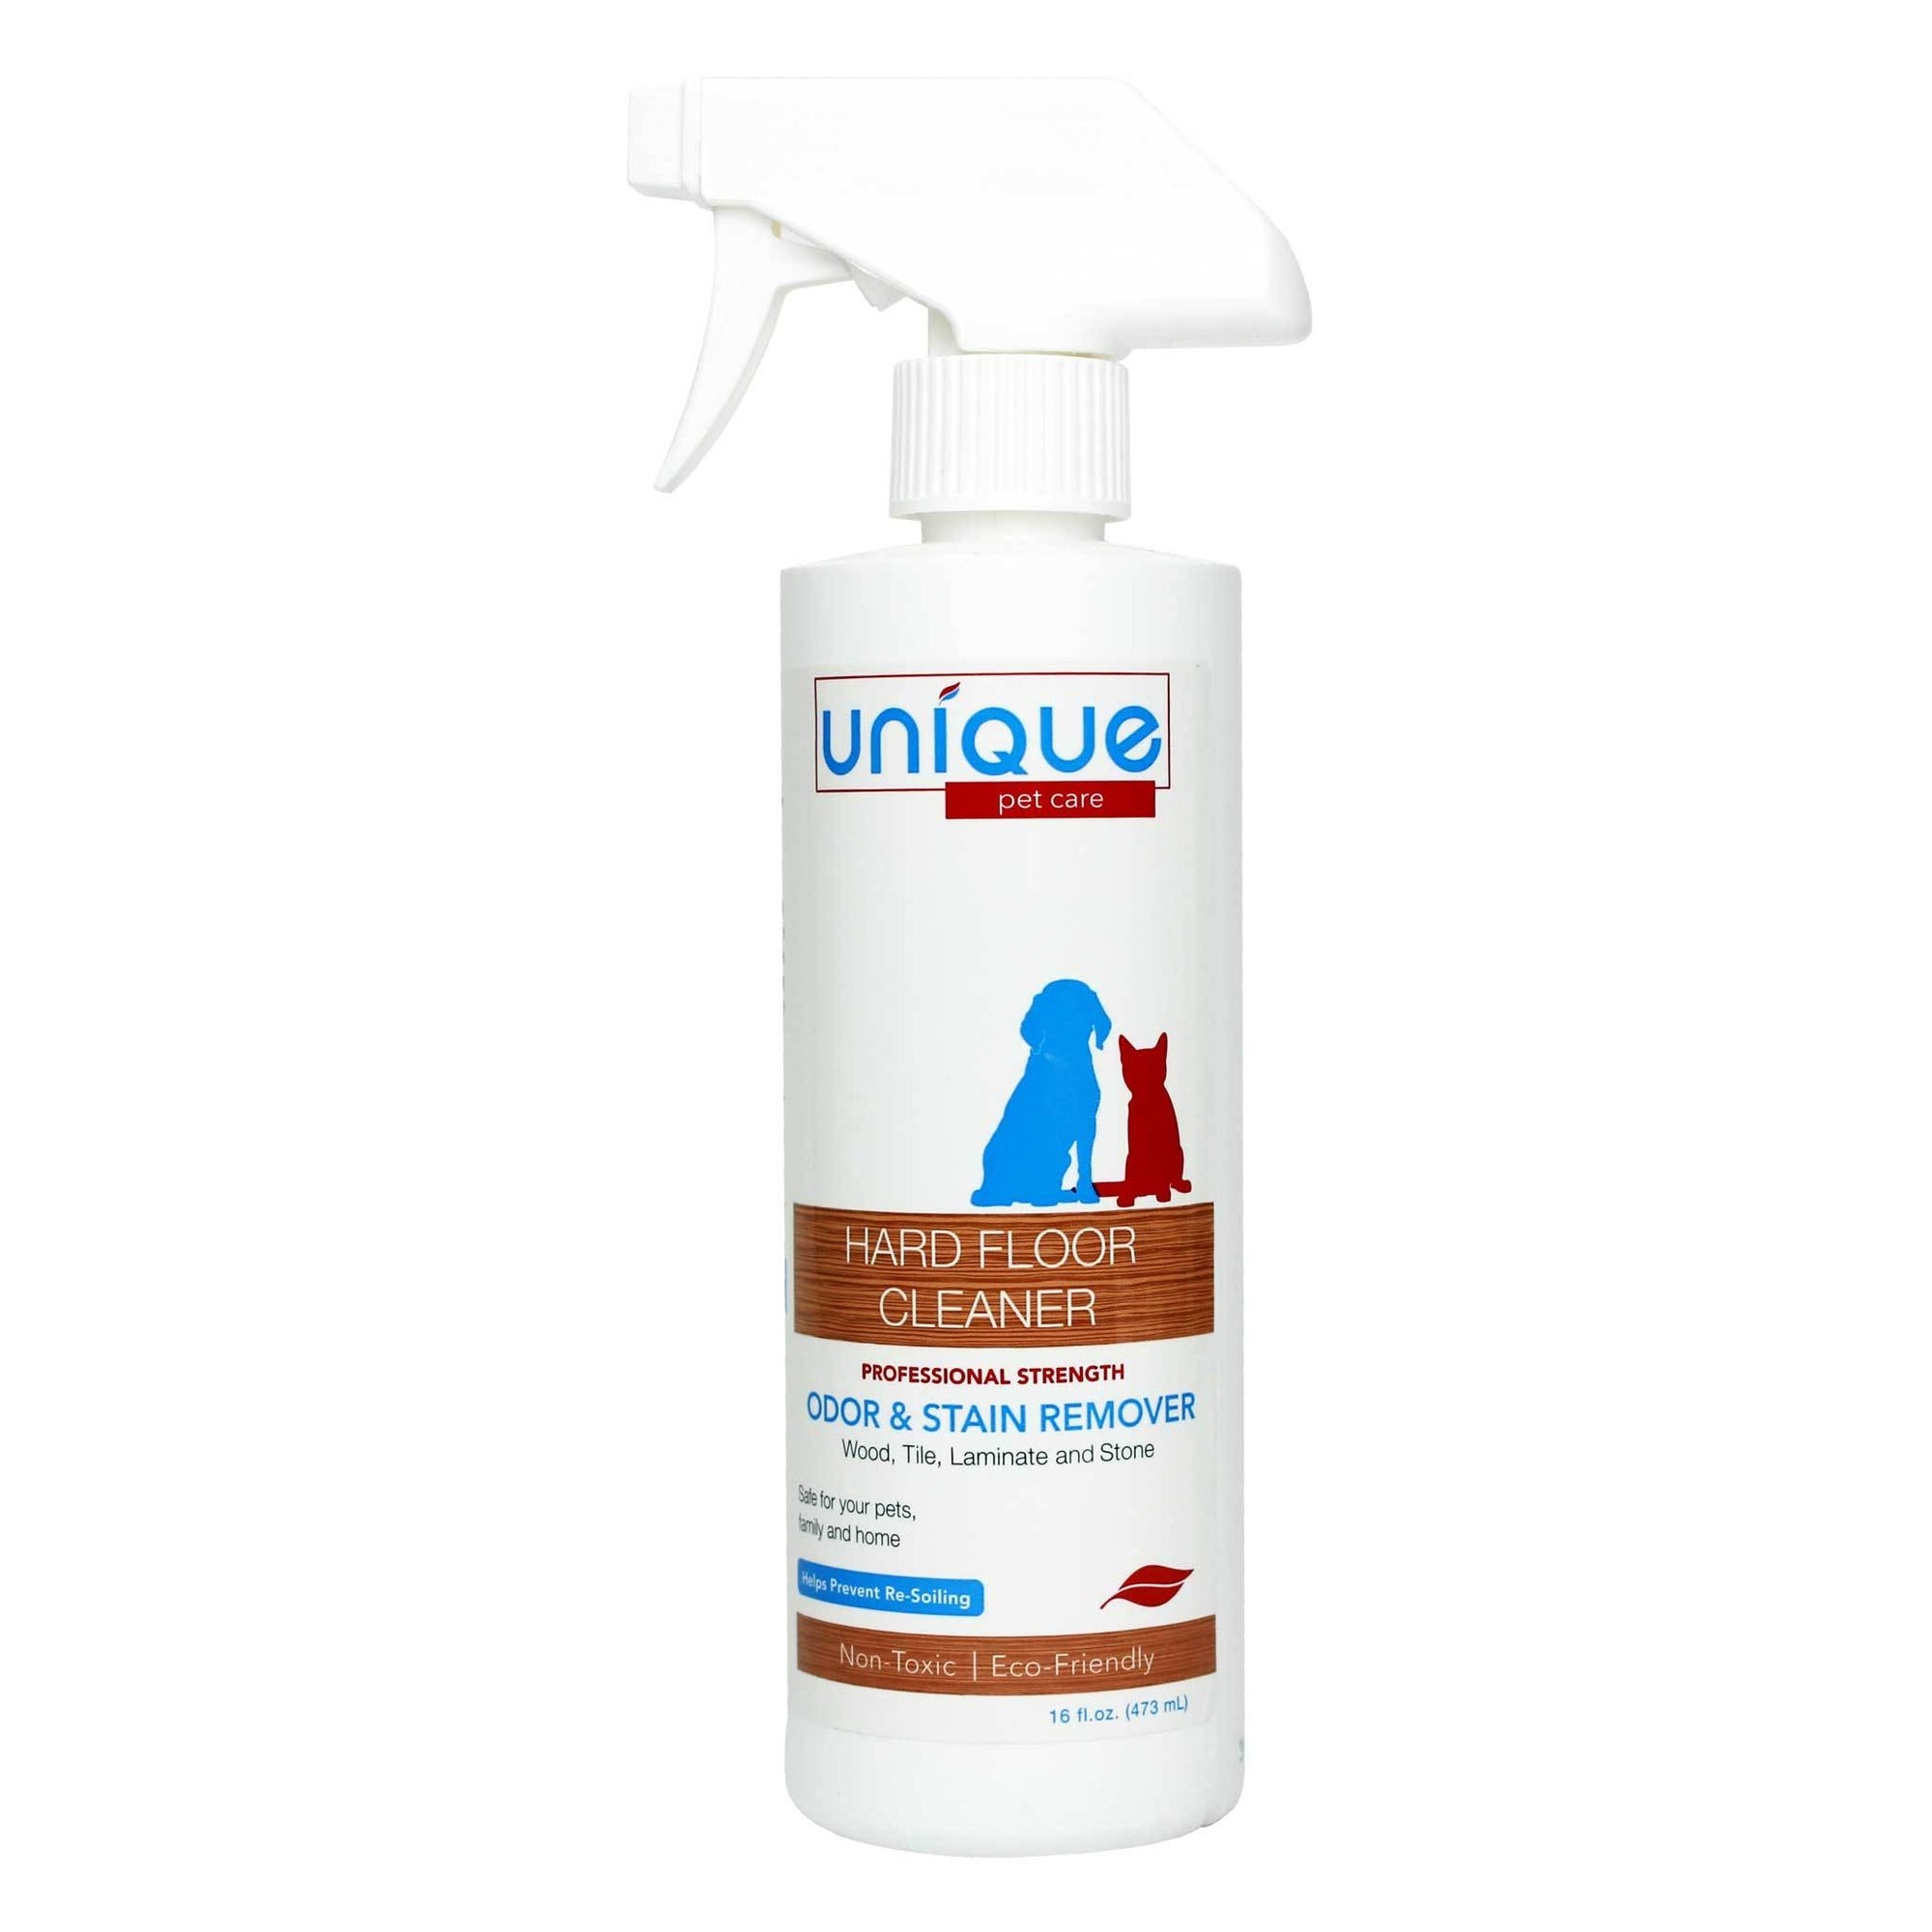 Unique Hard Floor Cleaner works on all hard surfaces to remove stains and odors. Unique Pet Care